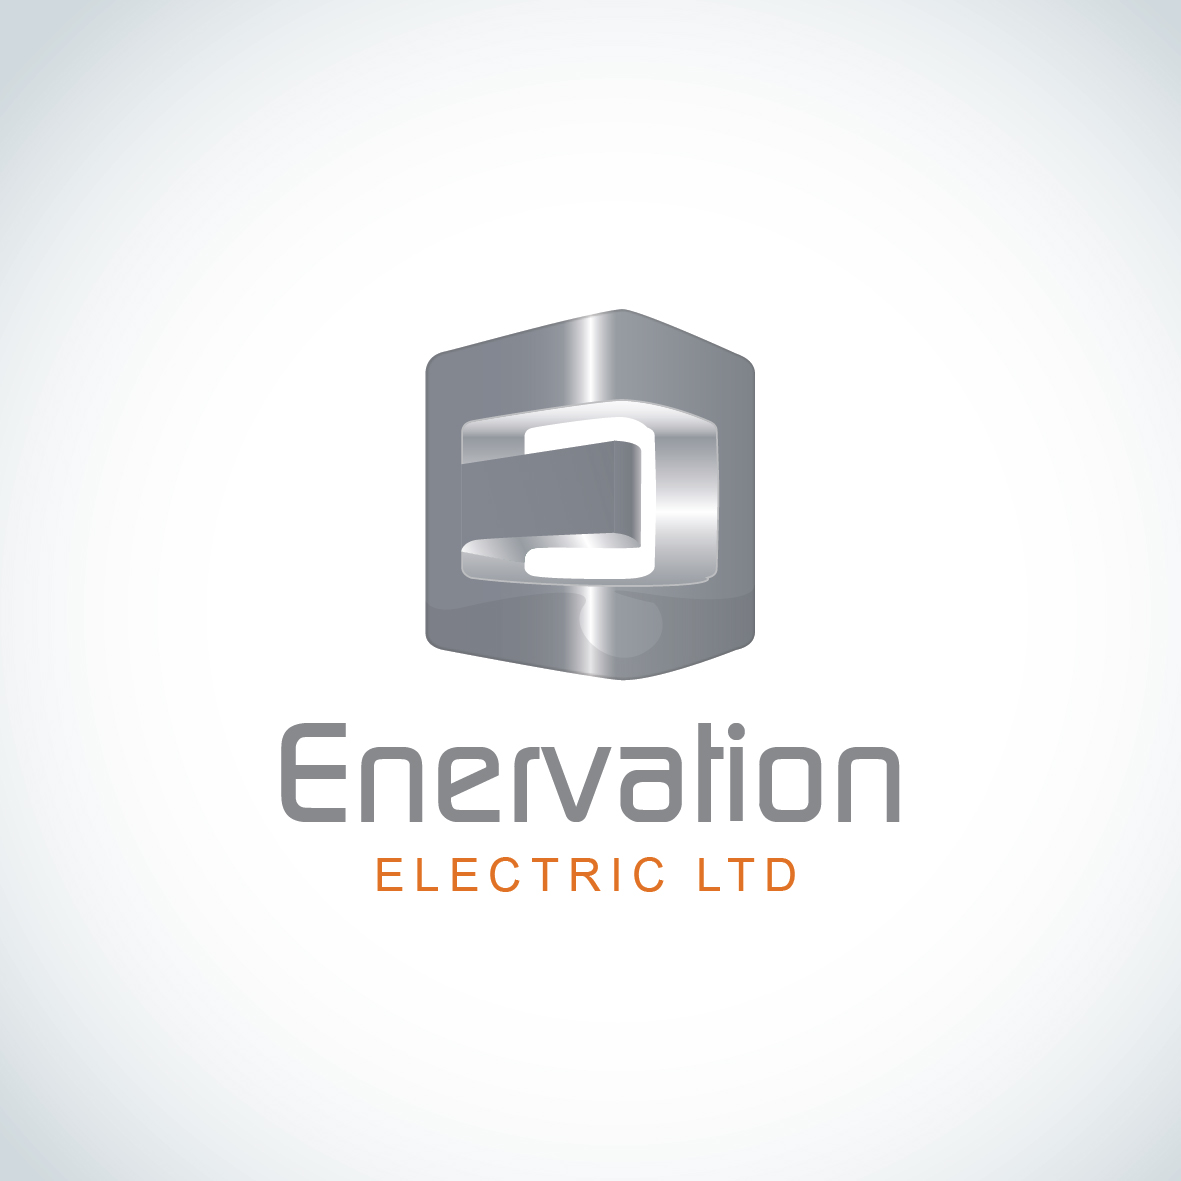 Business Card Design by aesthetic-art - Entry No. 140 in the Business Card Design Contest Enervation Logo Design.